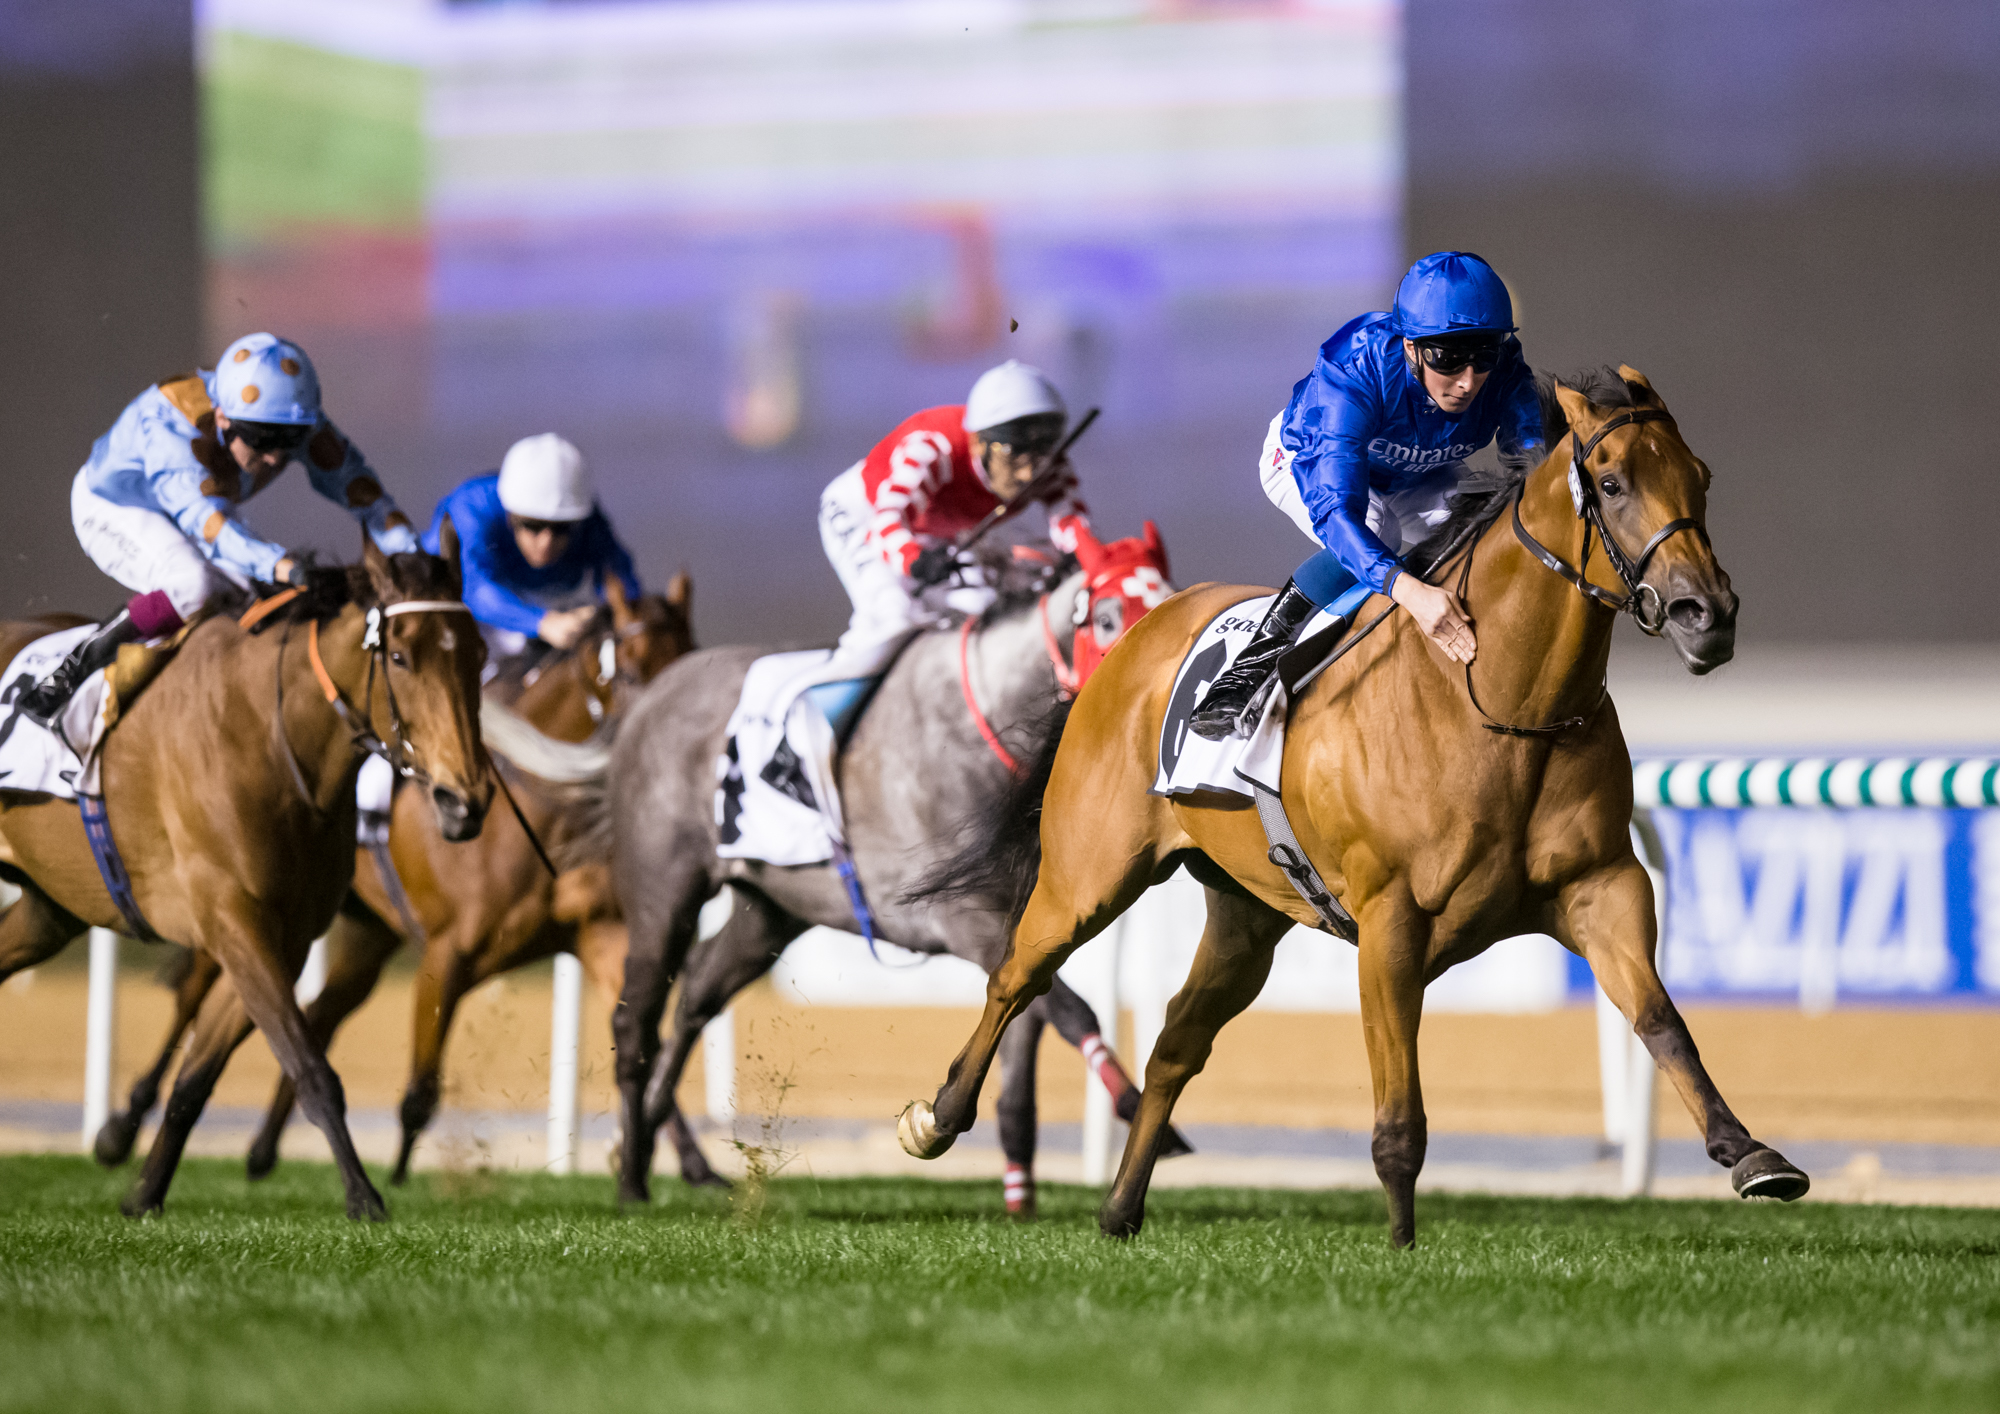 BALANCHINE STAKES (GR2) - Poetic Charm ne rate pas le penalty